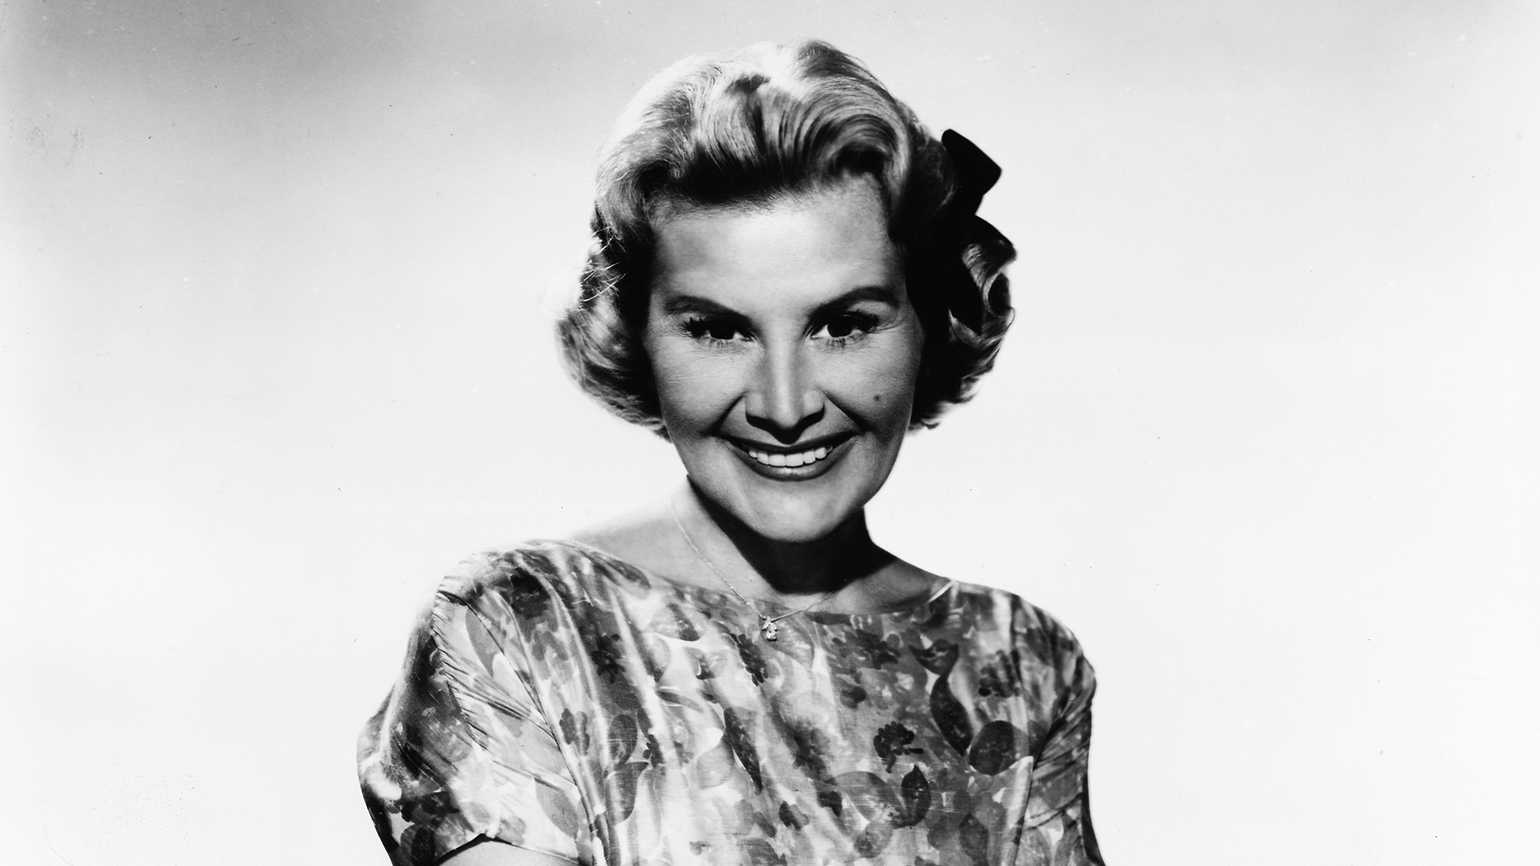 Actress and singer Rose Marie has been in show business since the age of four